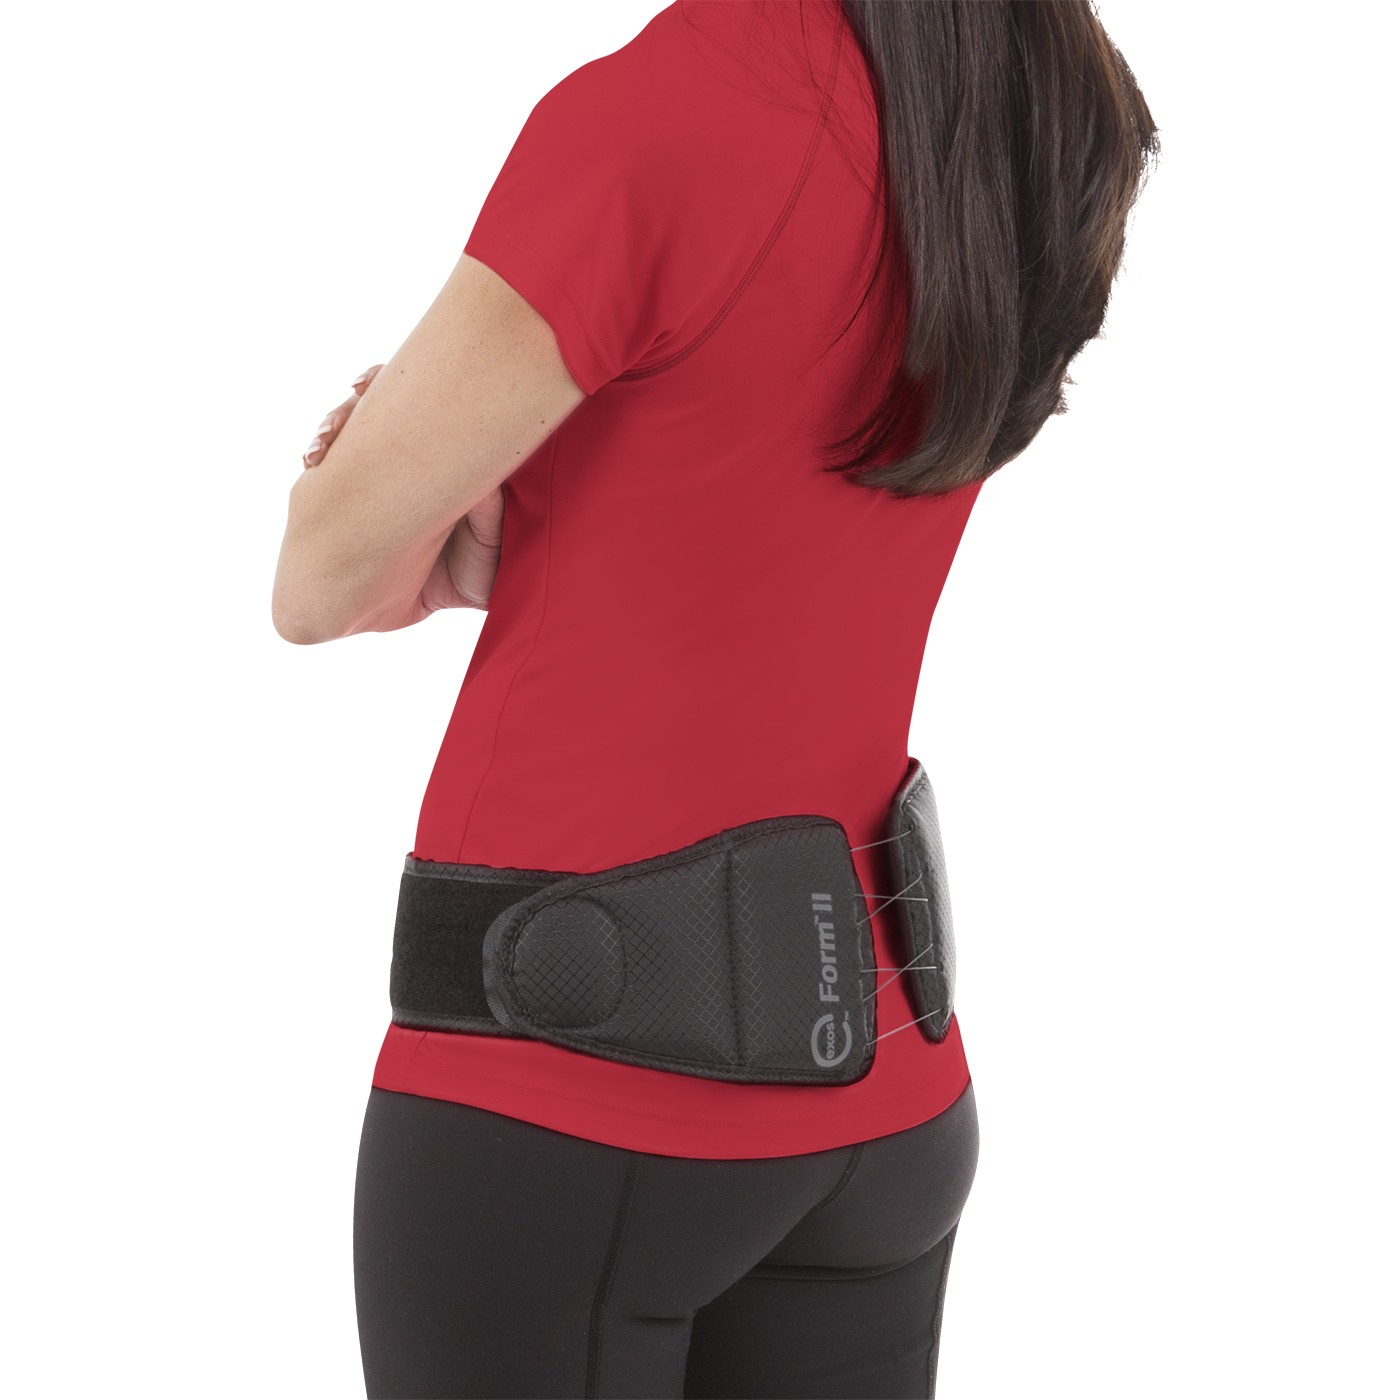 Exos Form II 621 SI Joint Back Brace - On Body